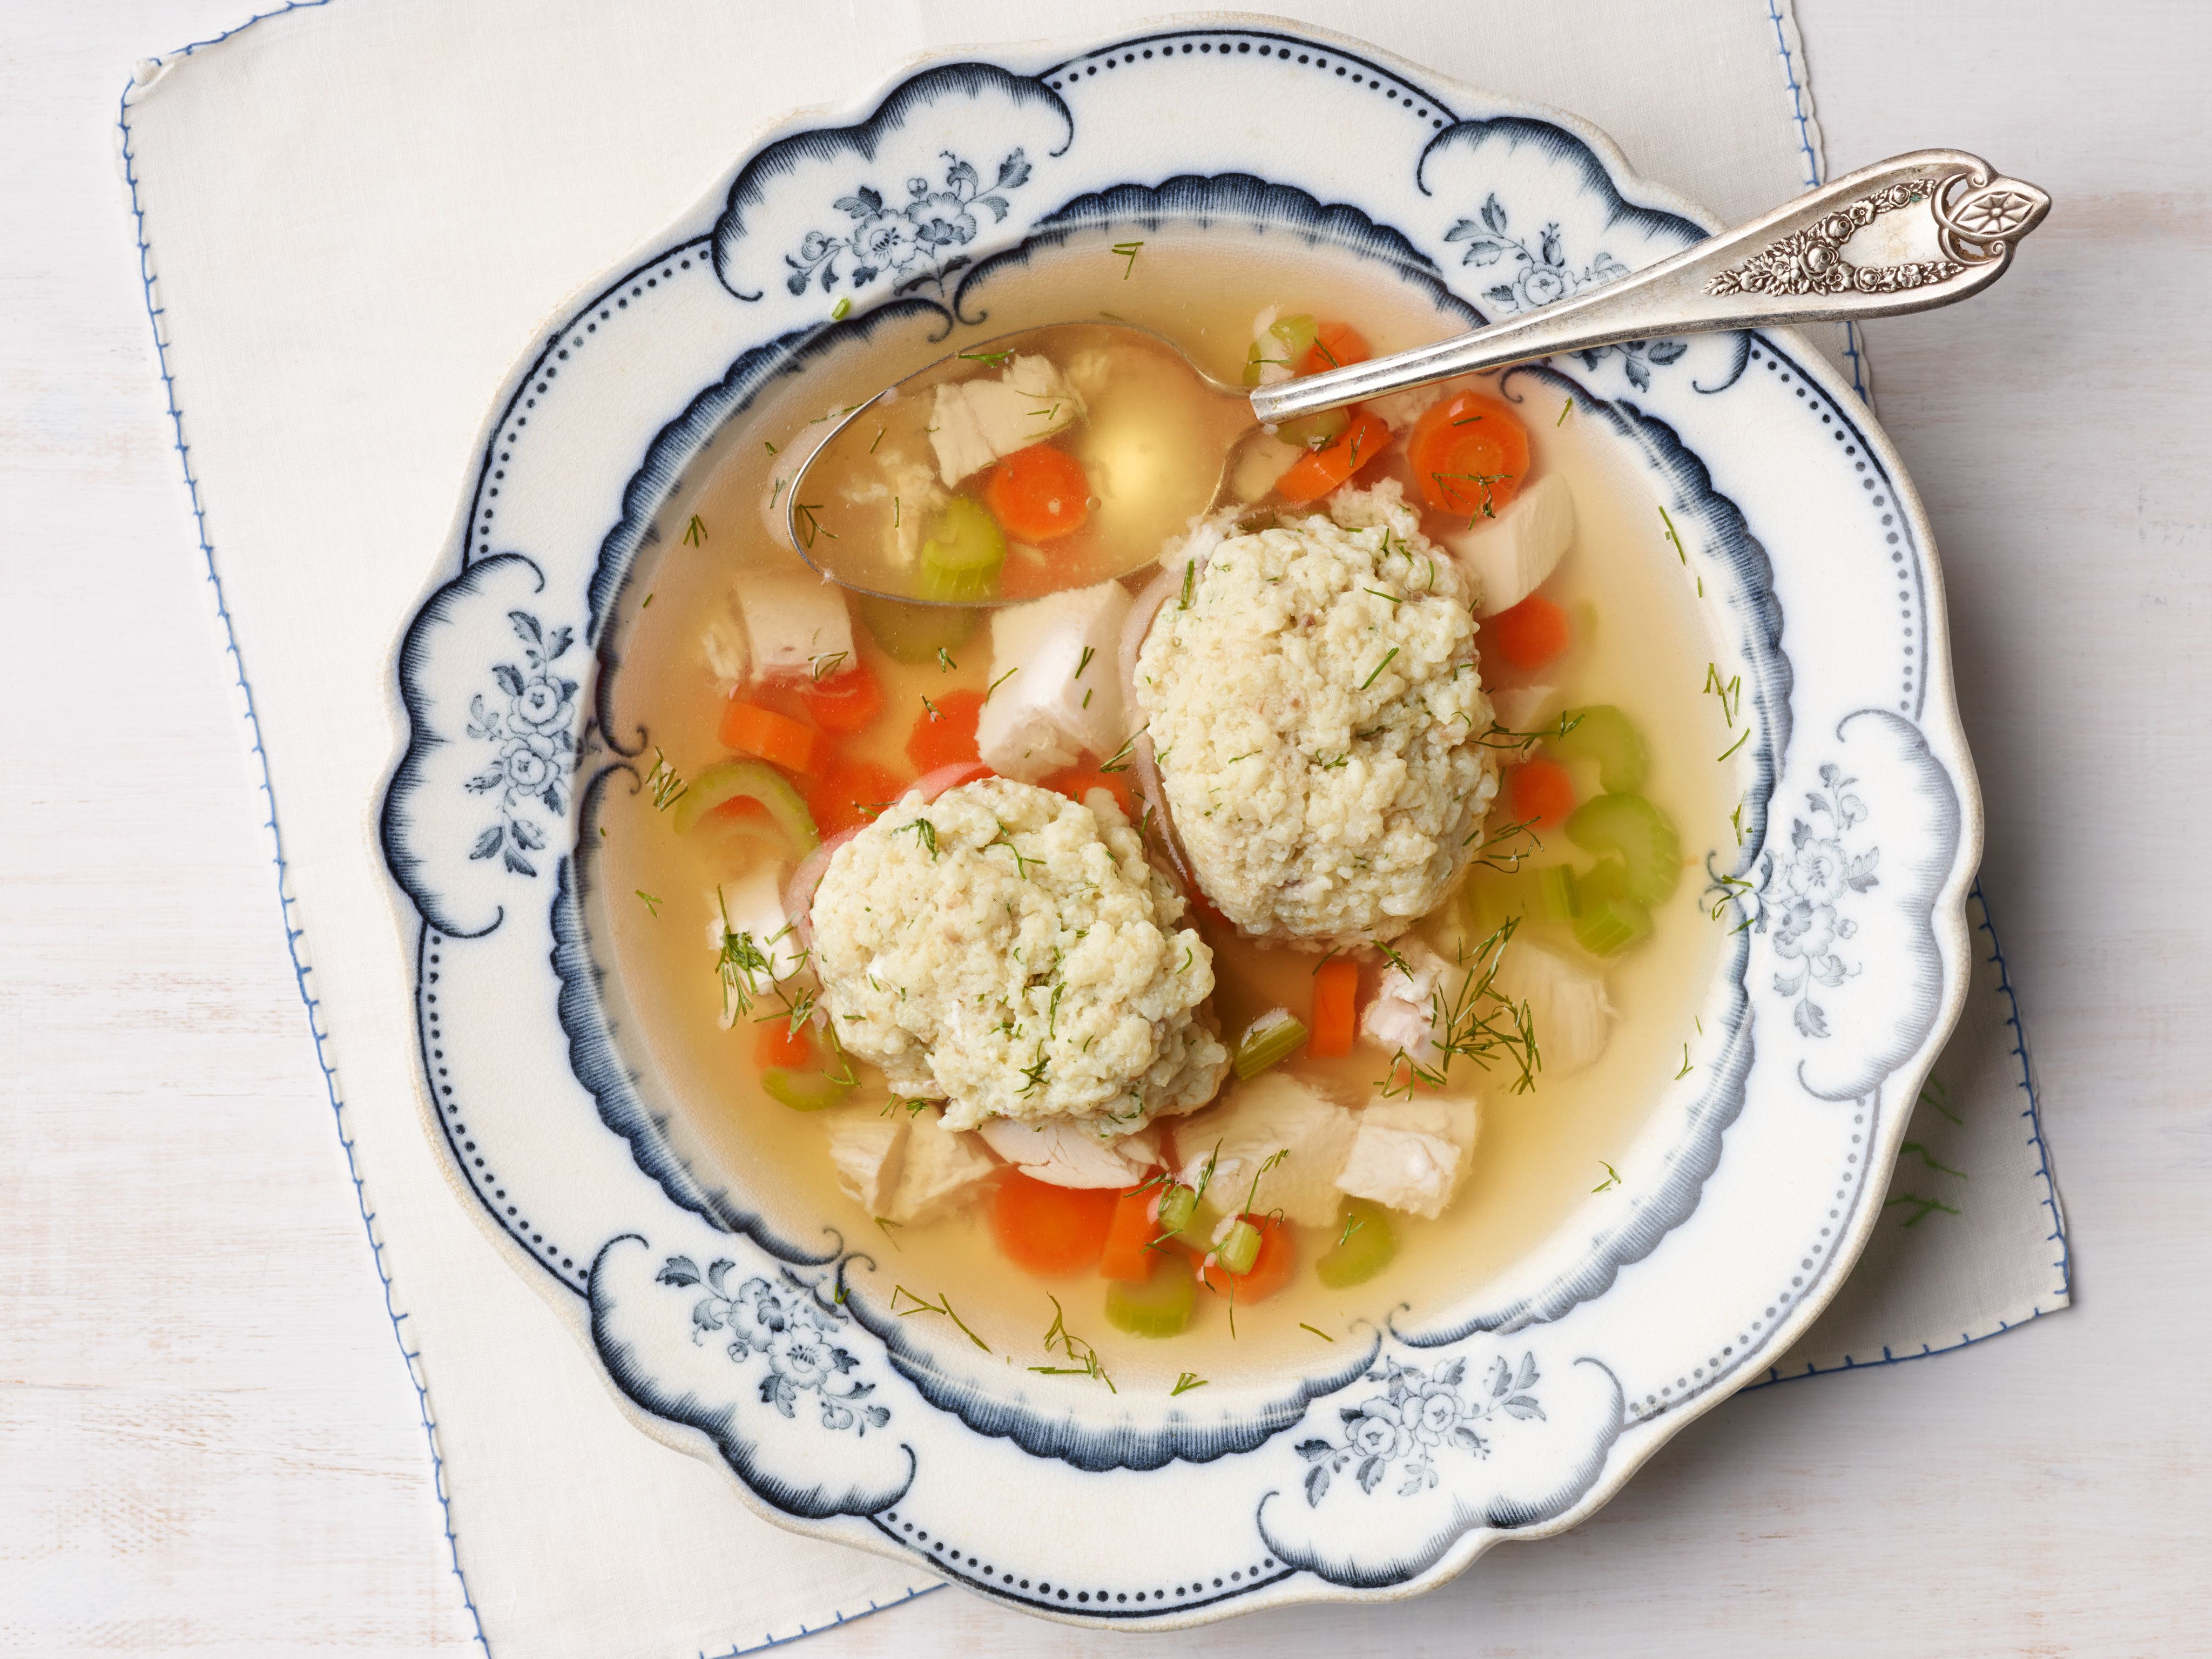 Matzo ball soup recipe soups stew and food recipes matzo ball soup forumfinder Choice Image